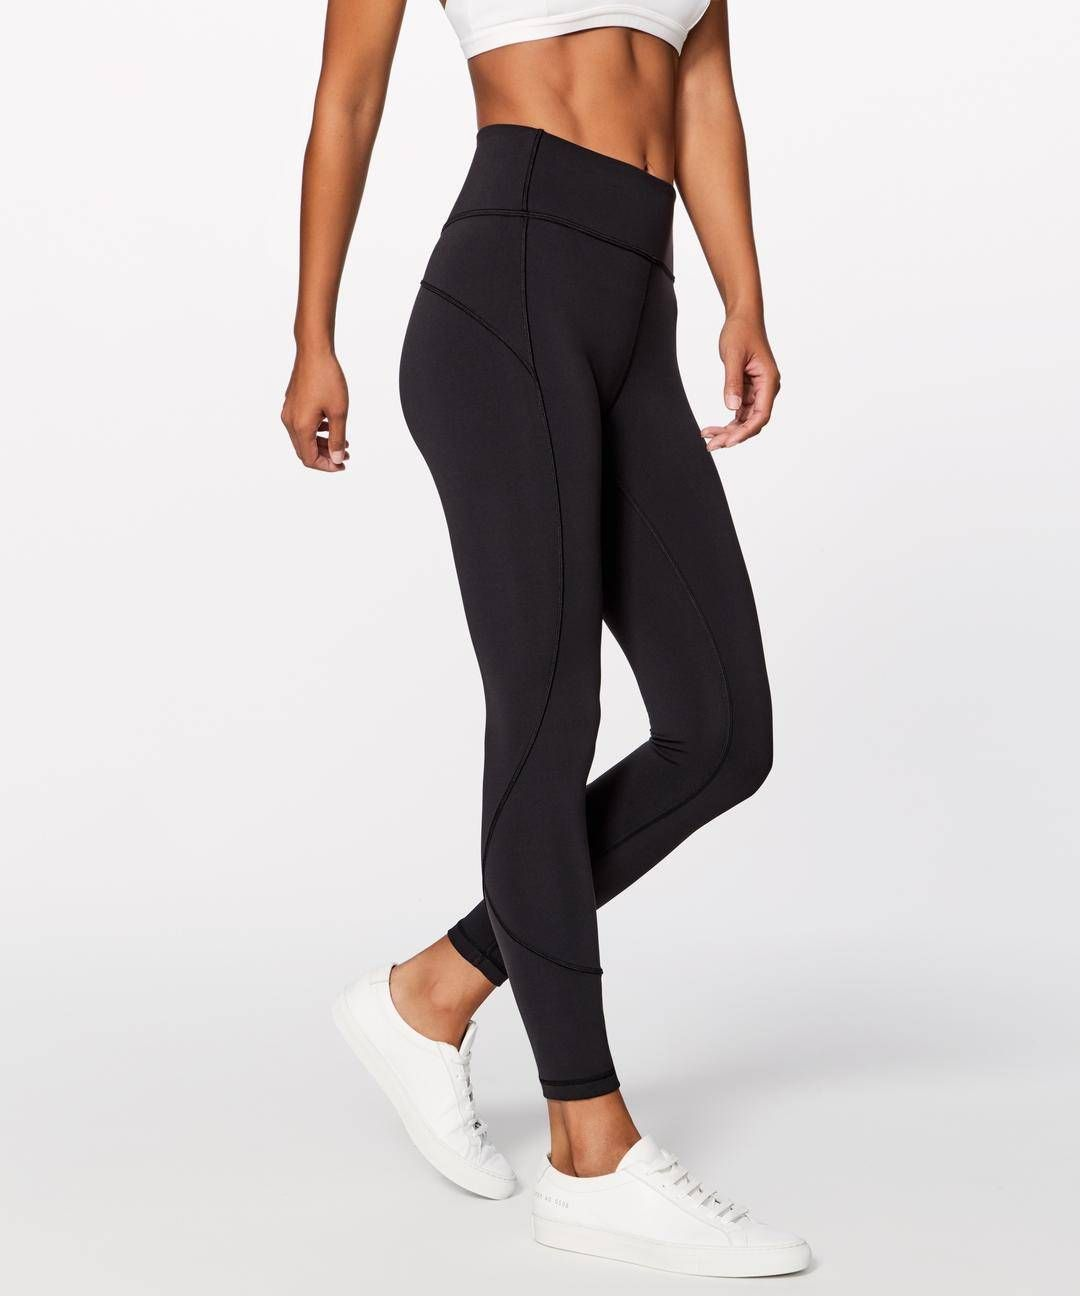 These Are the Best Leggings Brands 6940706ad5